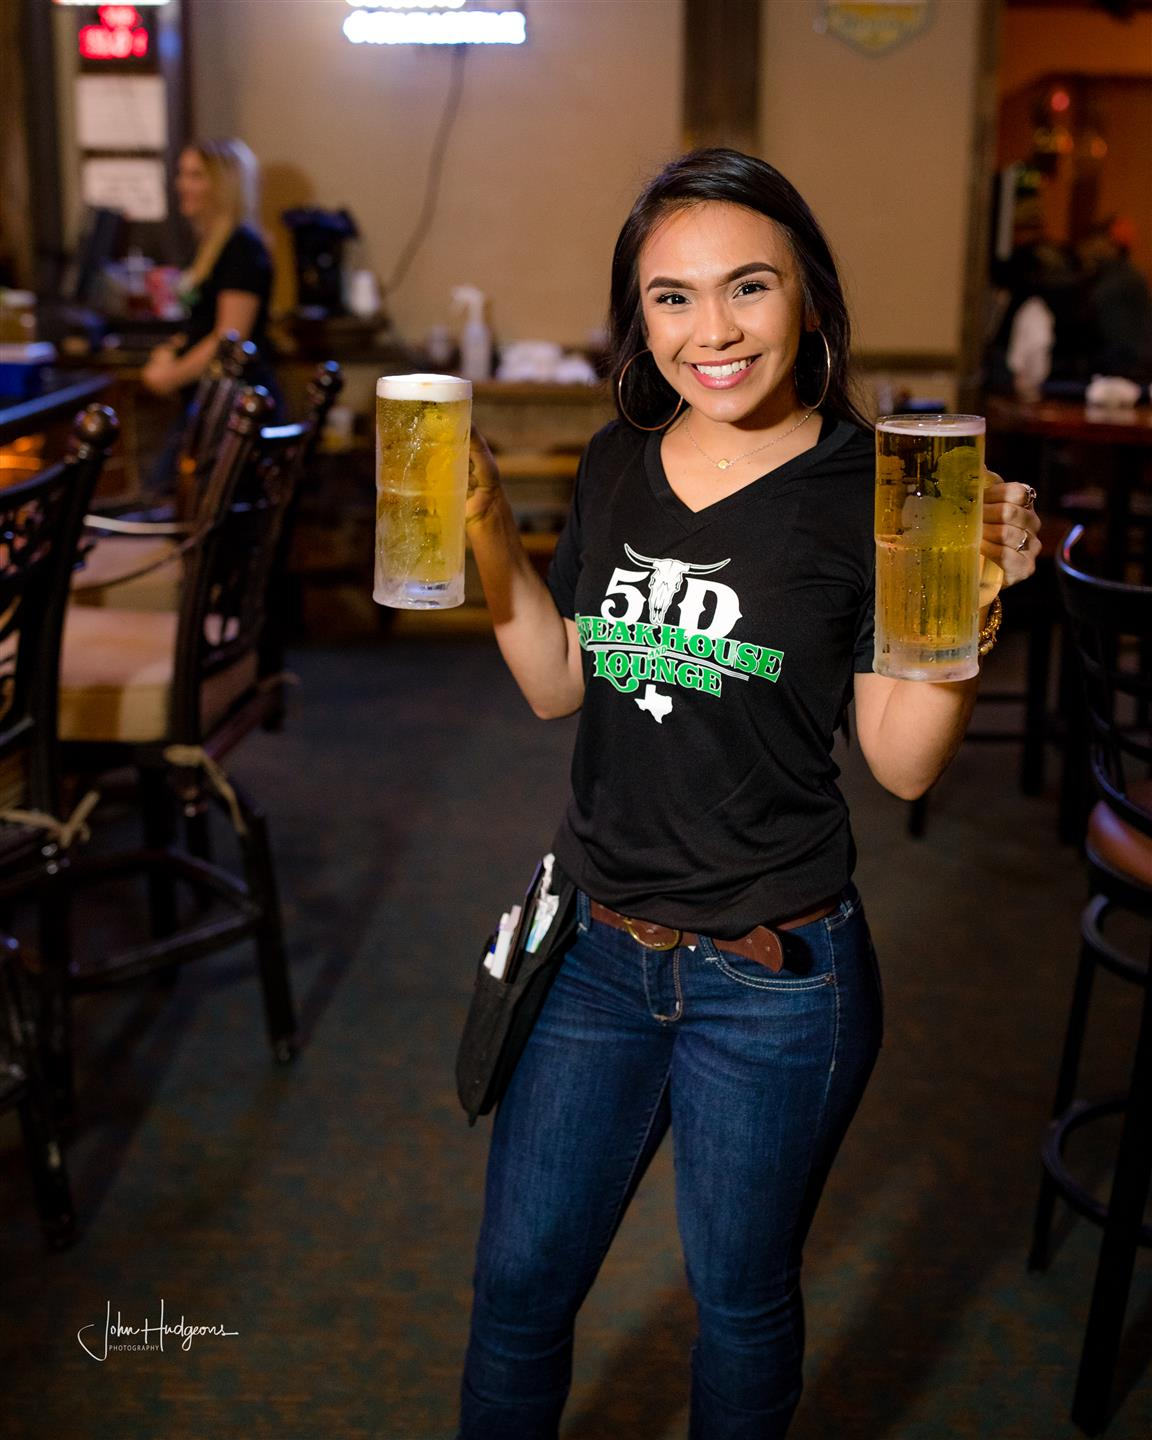 Waitress posing with a beer in each hand